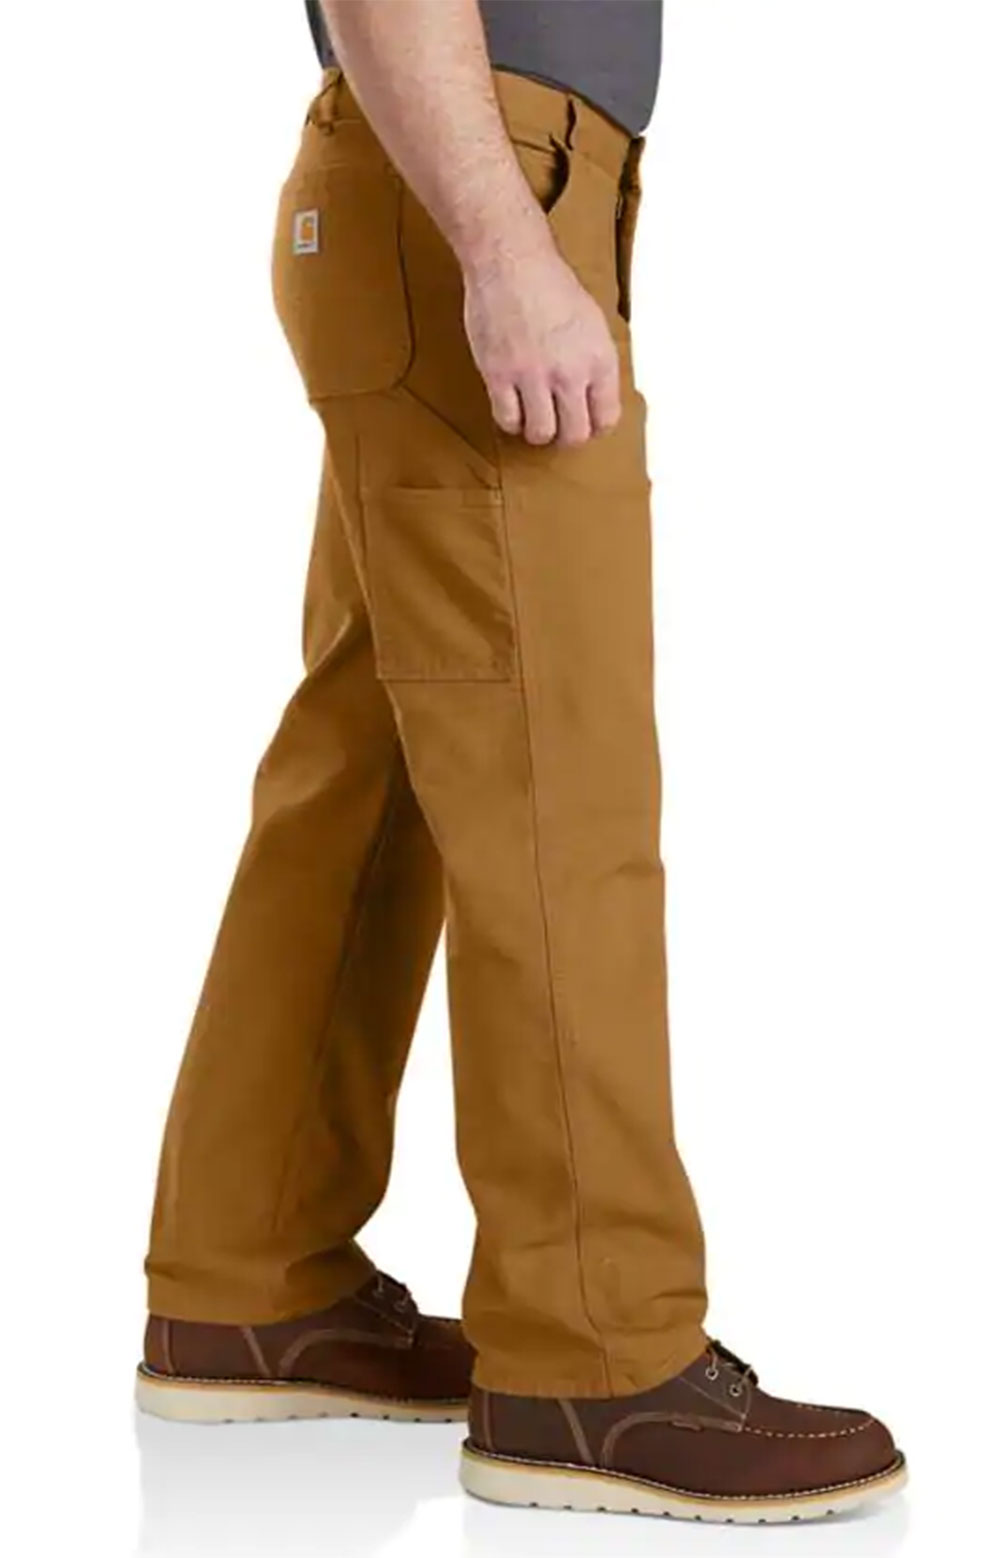 (103279) Rugged Flex Relaxed Fit Duck Dungaree - Carhartt Brown   3